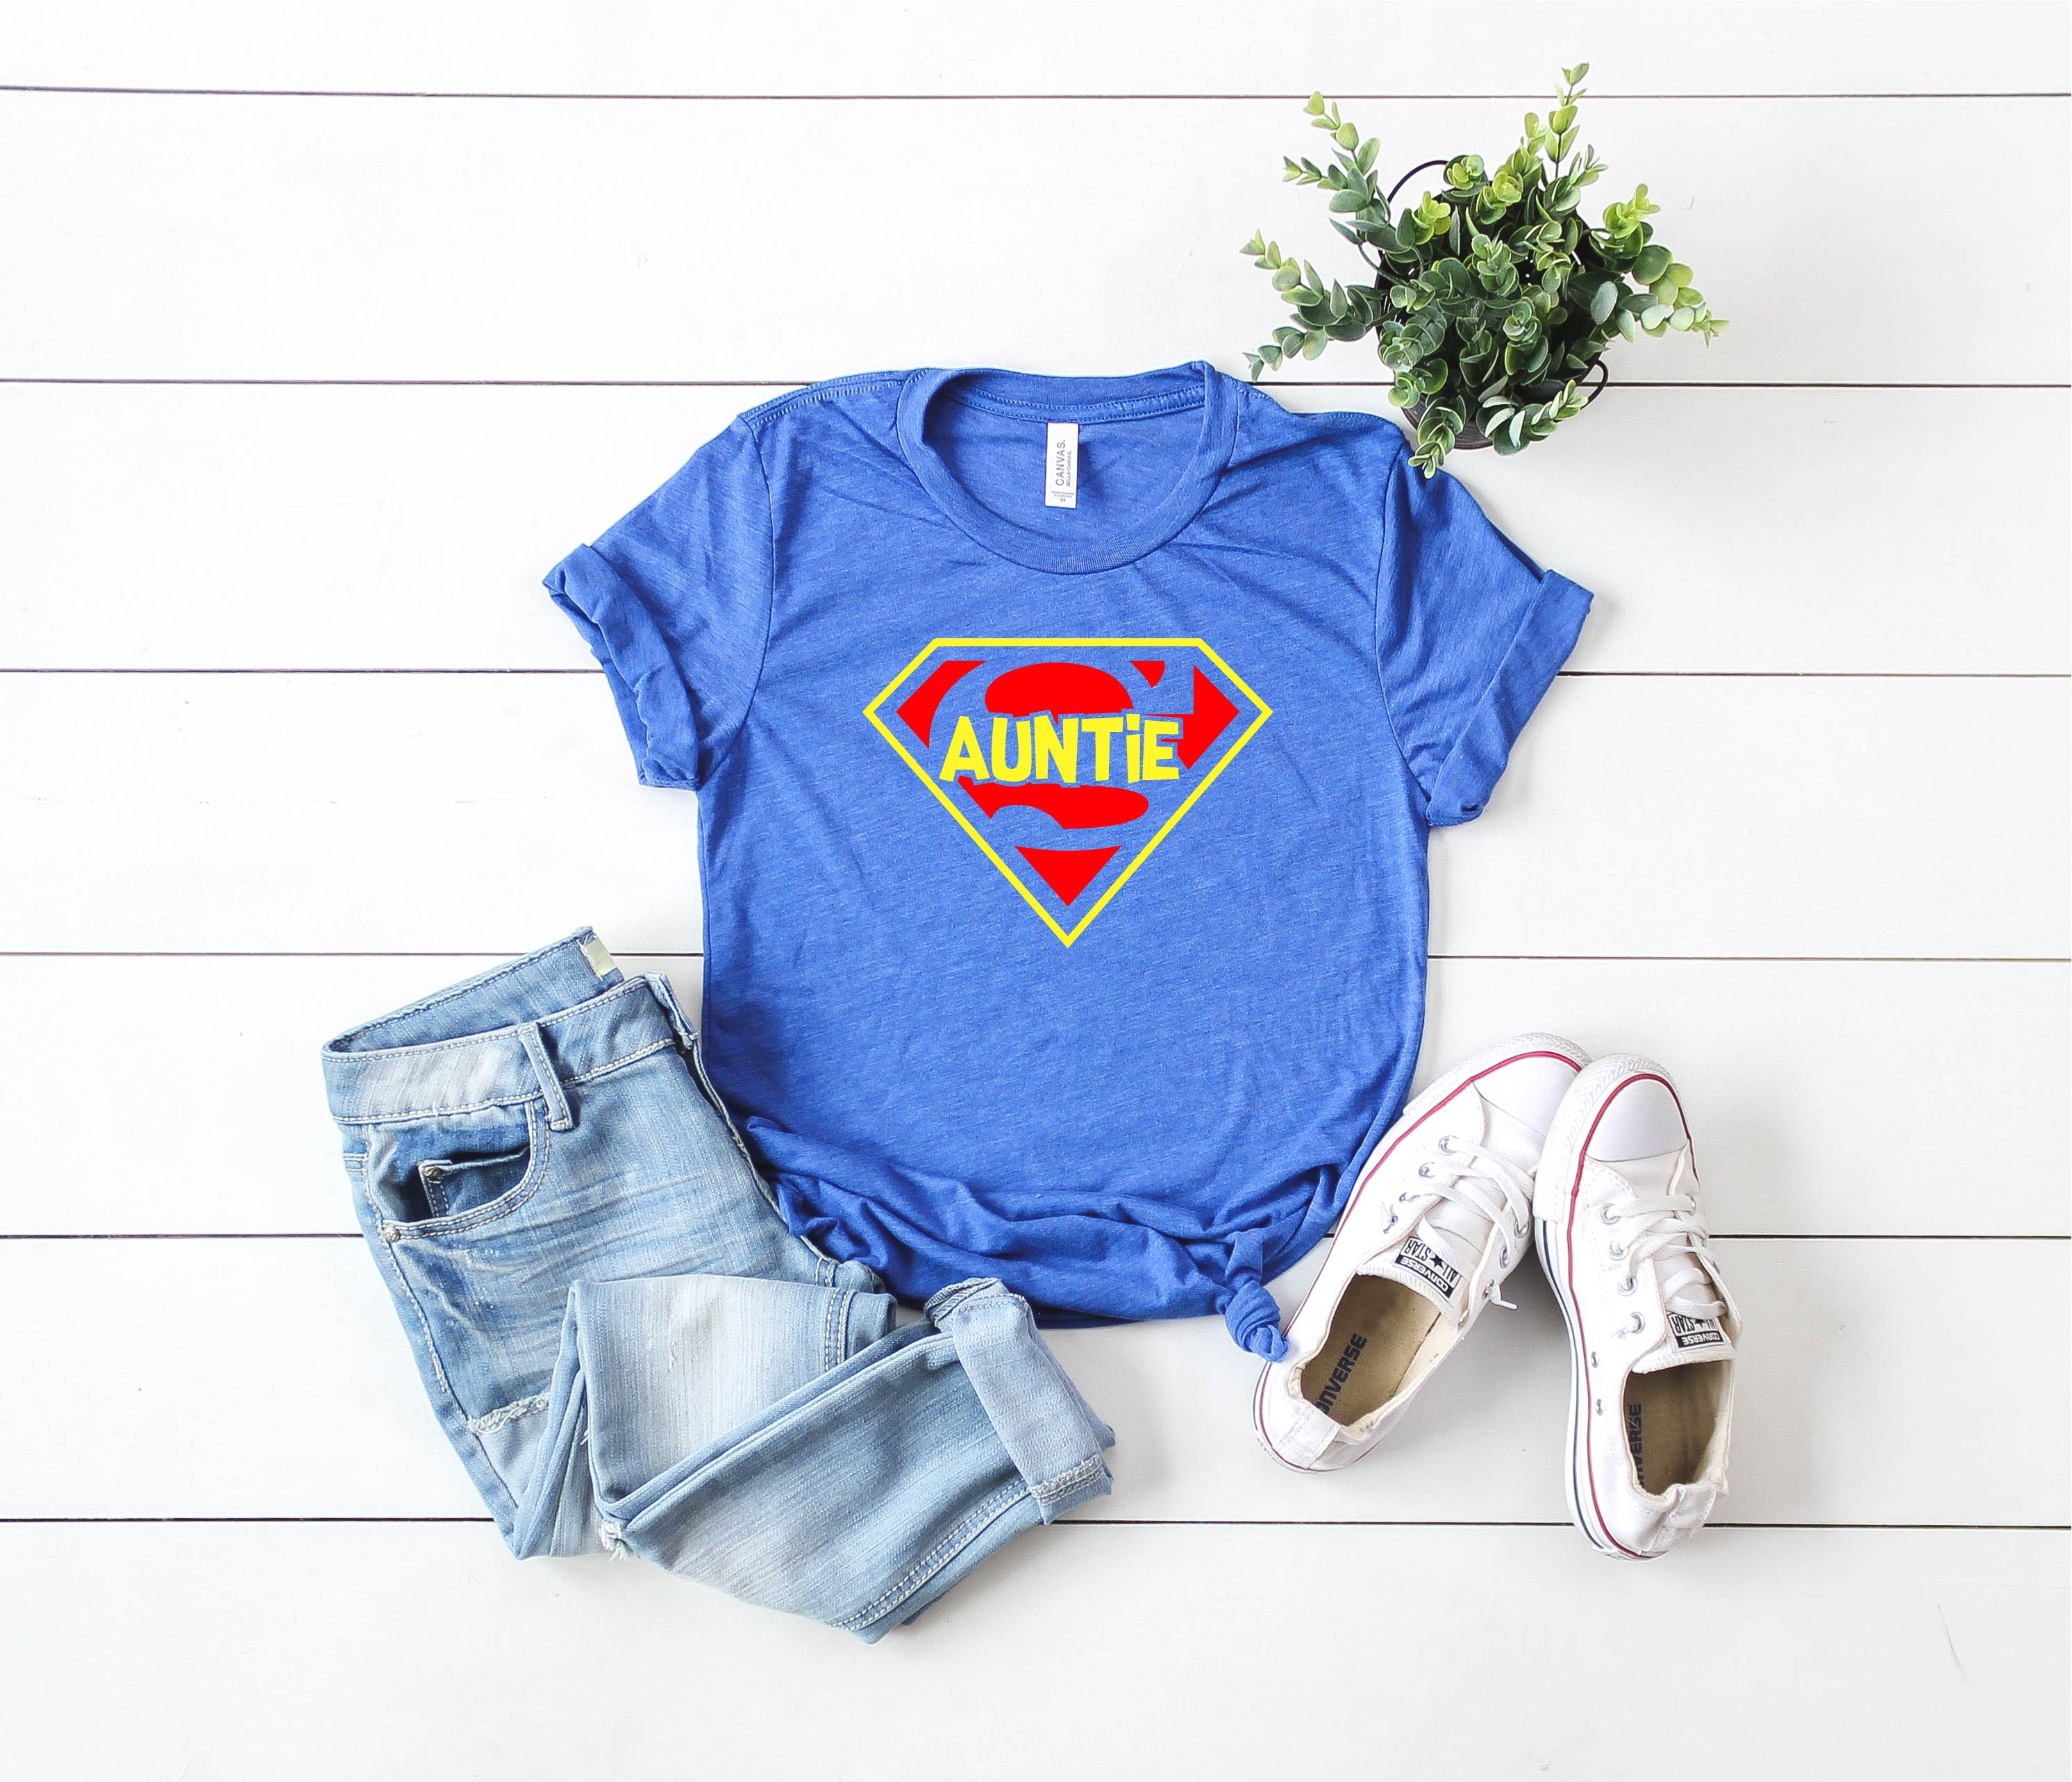 Aunt T shirt Aunt Gift Gift for Auntie Gift For Aunt Aunt Shirt Funny Aunt T-Shirt Auntie Bear Shirt Best Aunt Ever Tee Auntie Tee